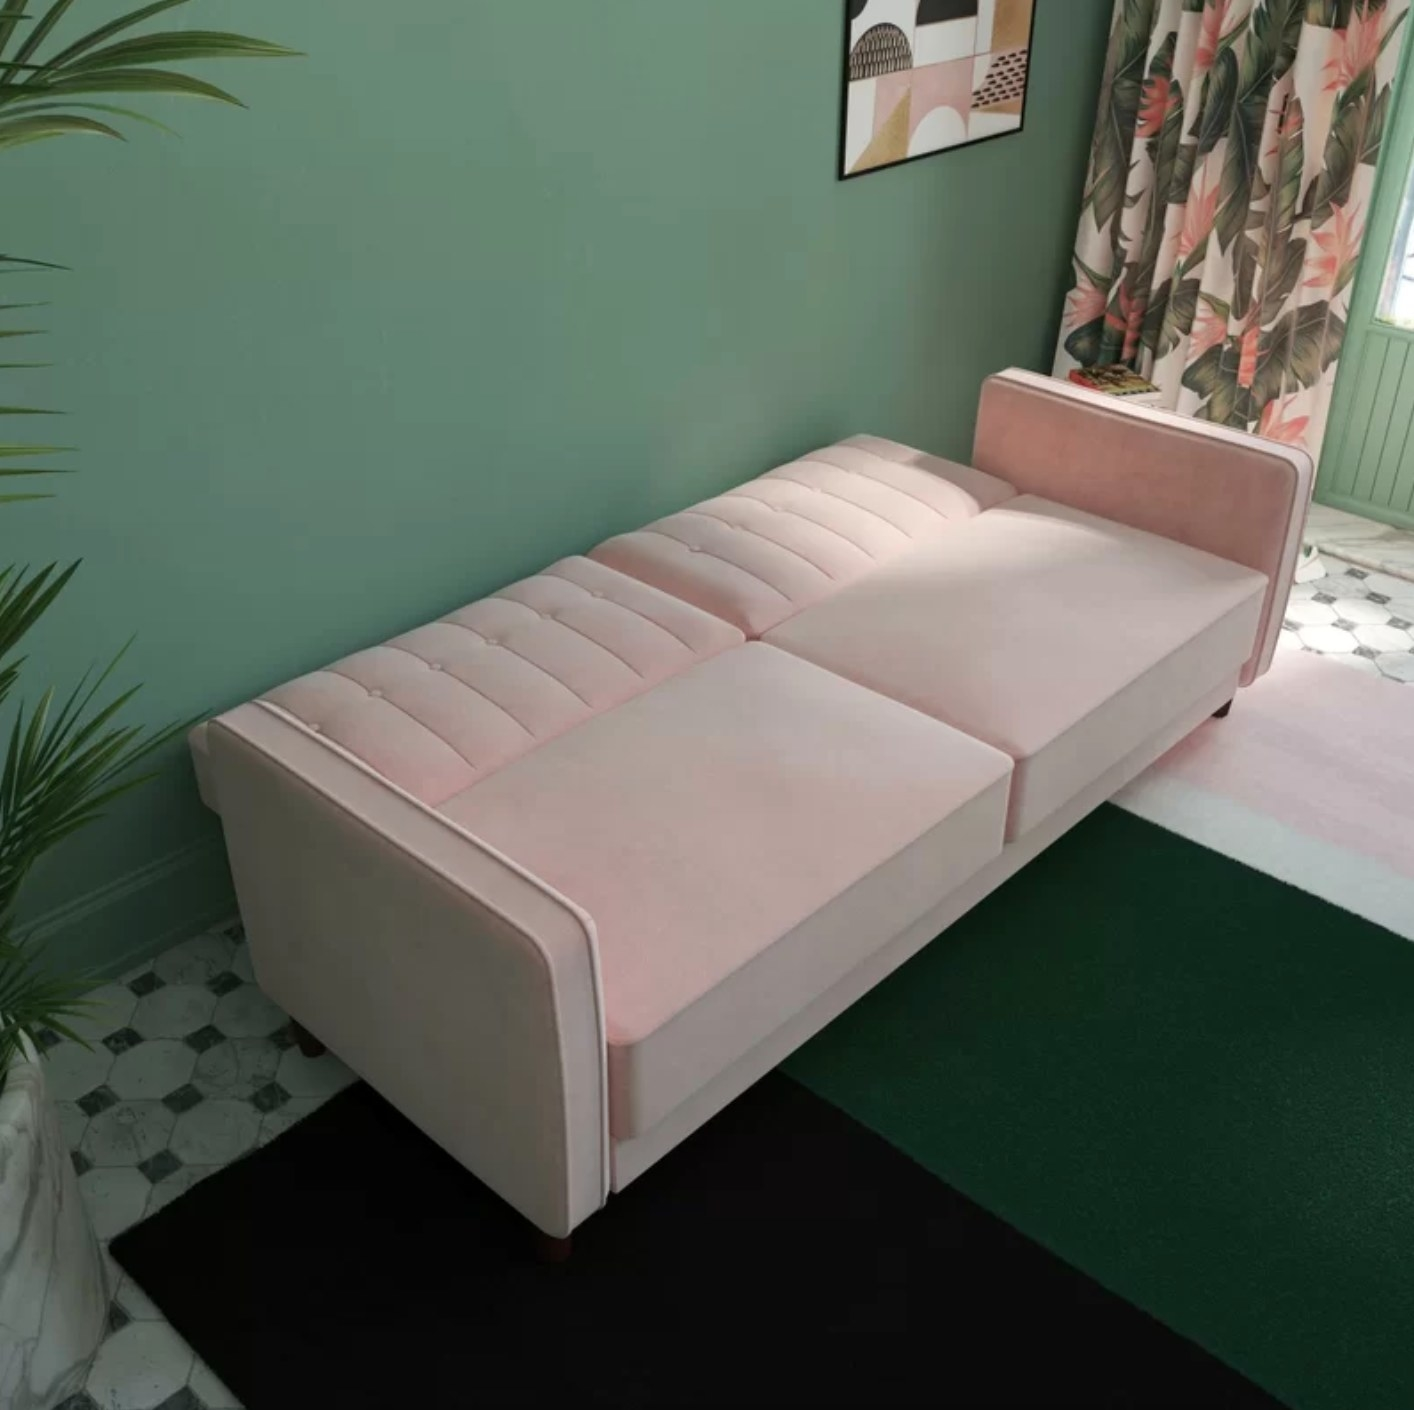 The square arm sleeper sofa in pink